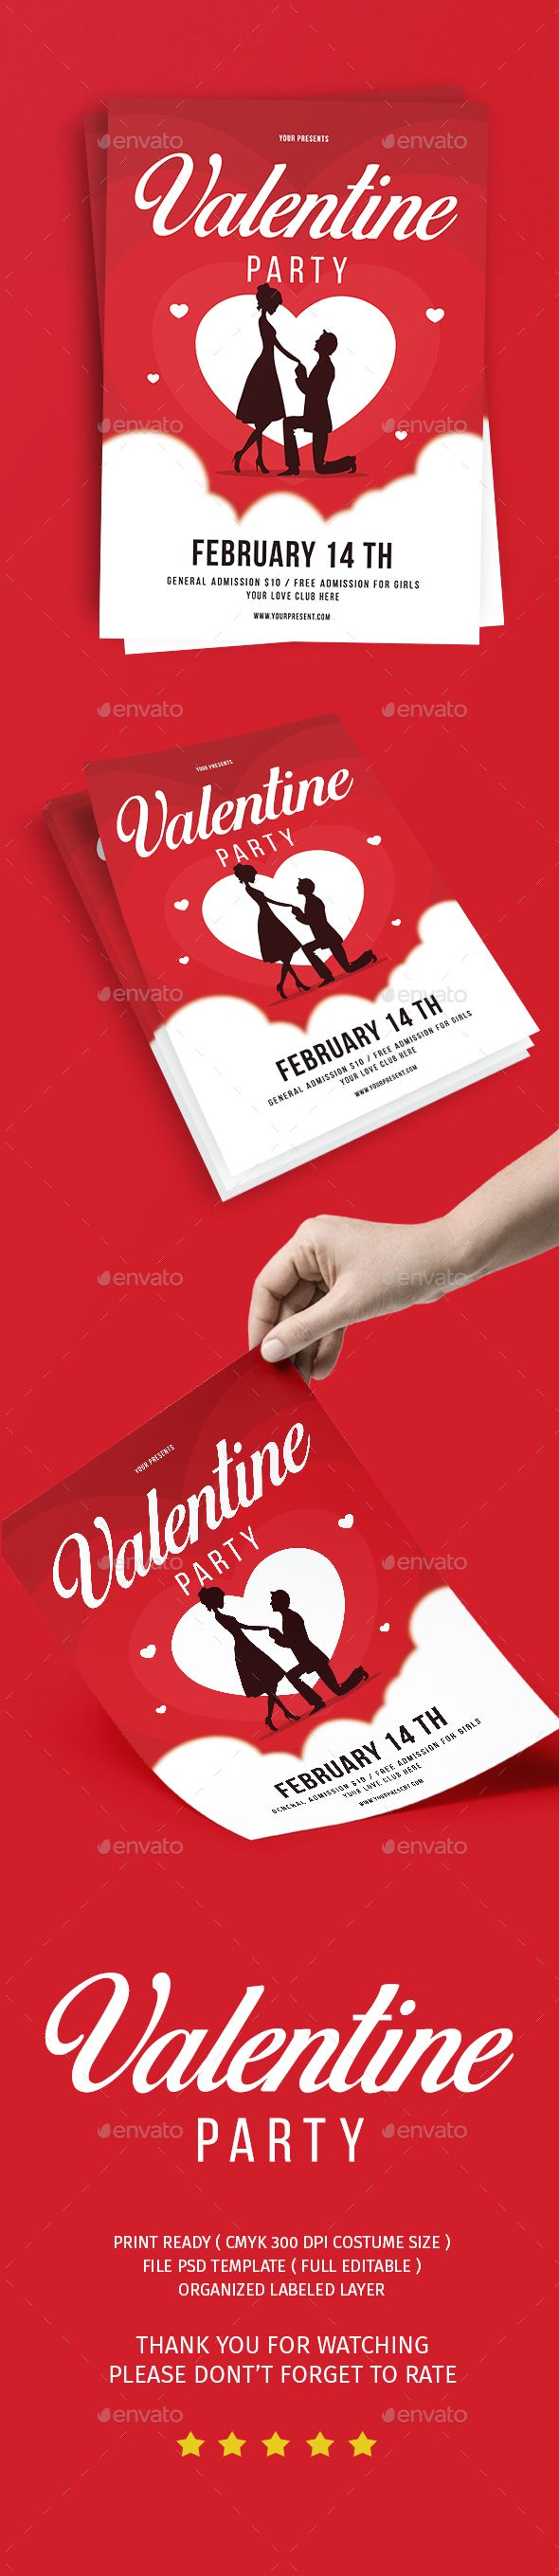 1761 best Layout images on Pinterest | Advertising, Calling cards ...